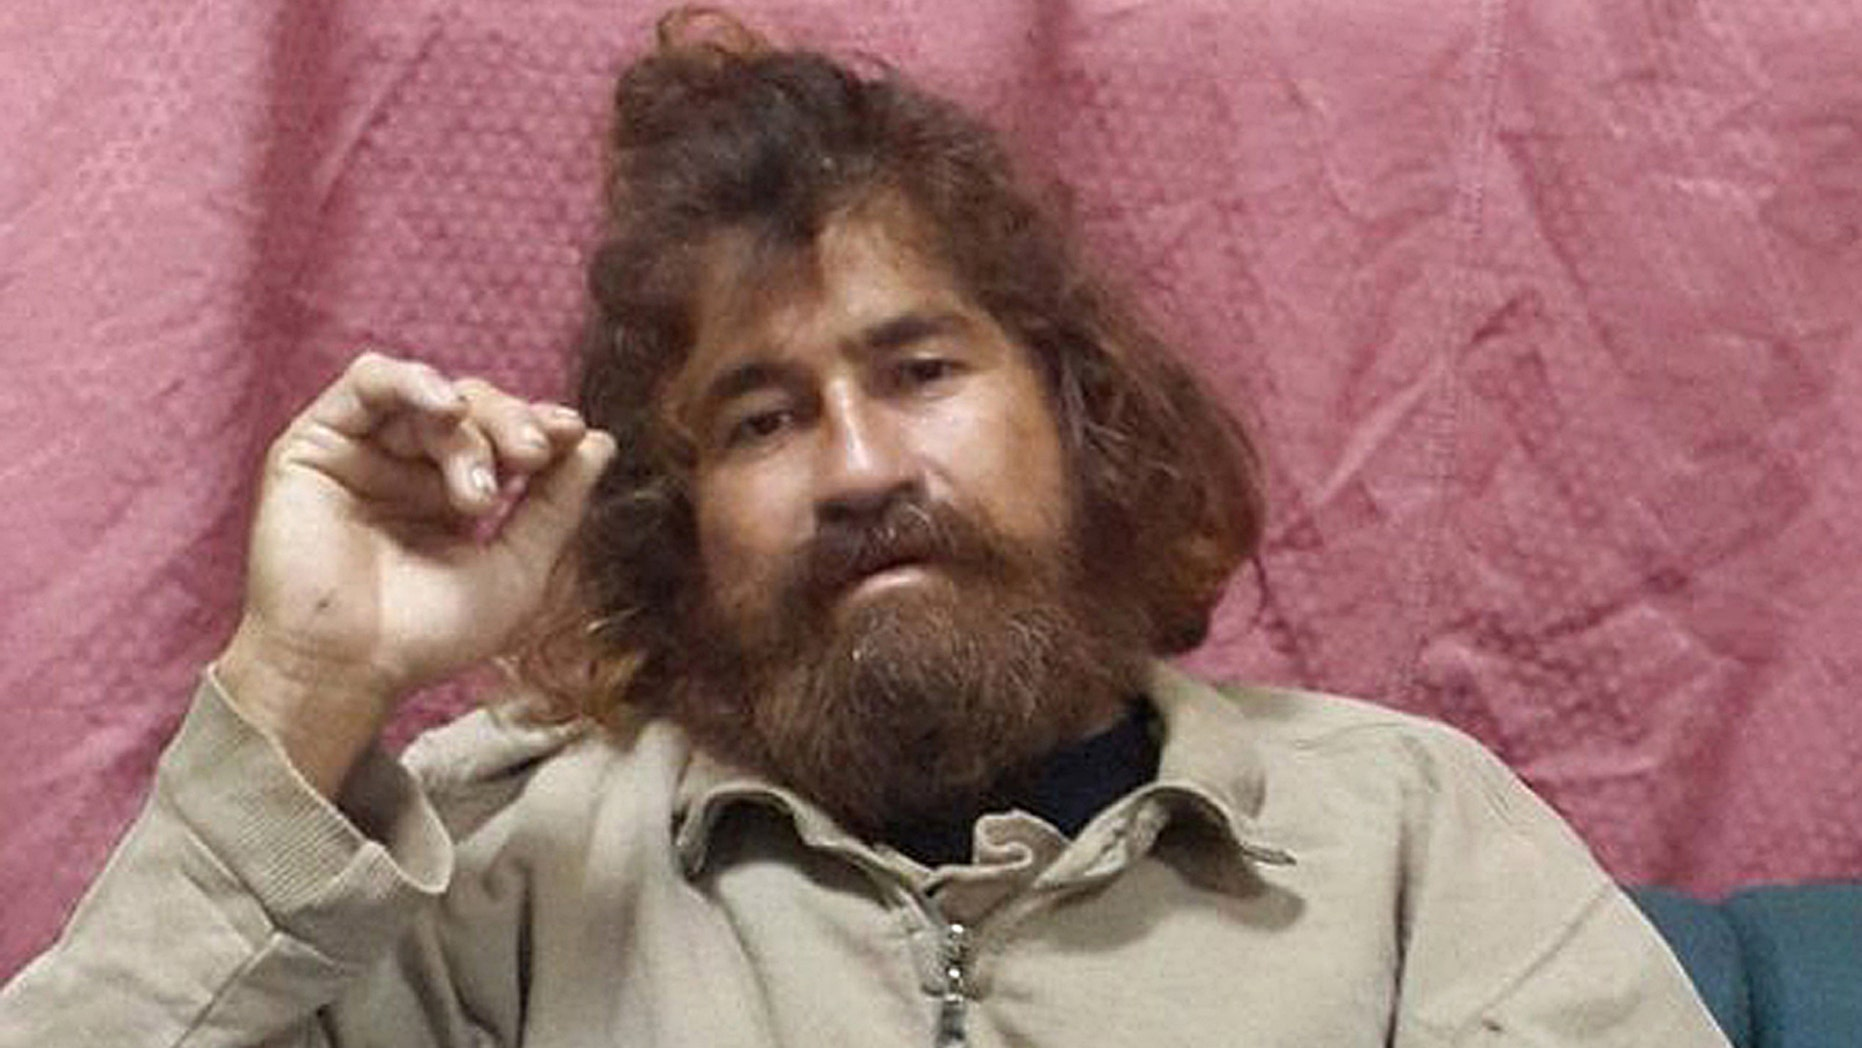 Jose Salvador Alvarenga sits on a couch in Majuro in the Marshall Islands, after he was rescued from being washed ashore on the tiny atoll of Ebon in the Pacific Ocean.